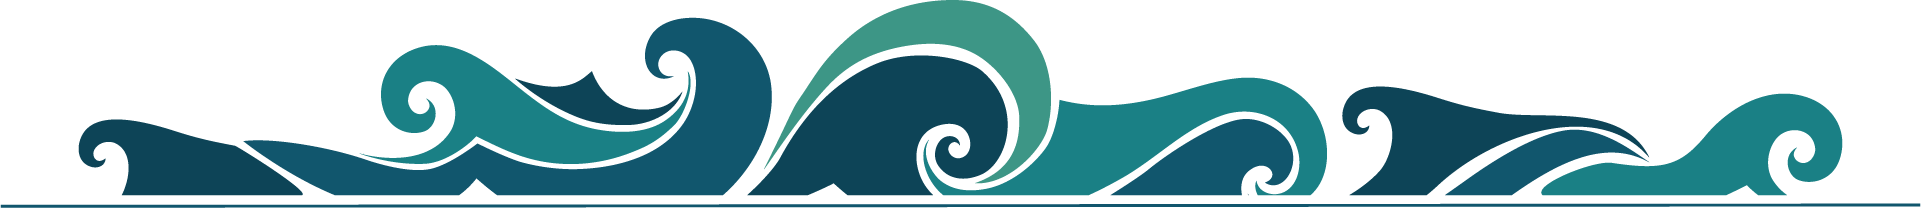 WAVES-Bottom.png